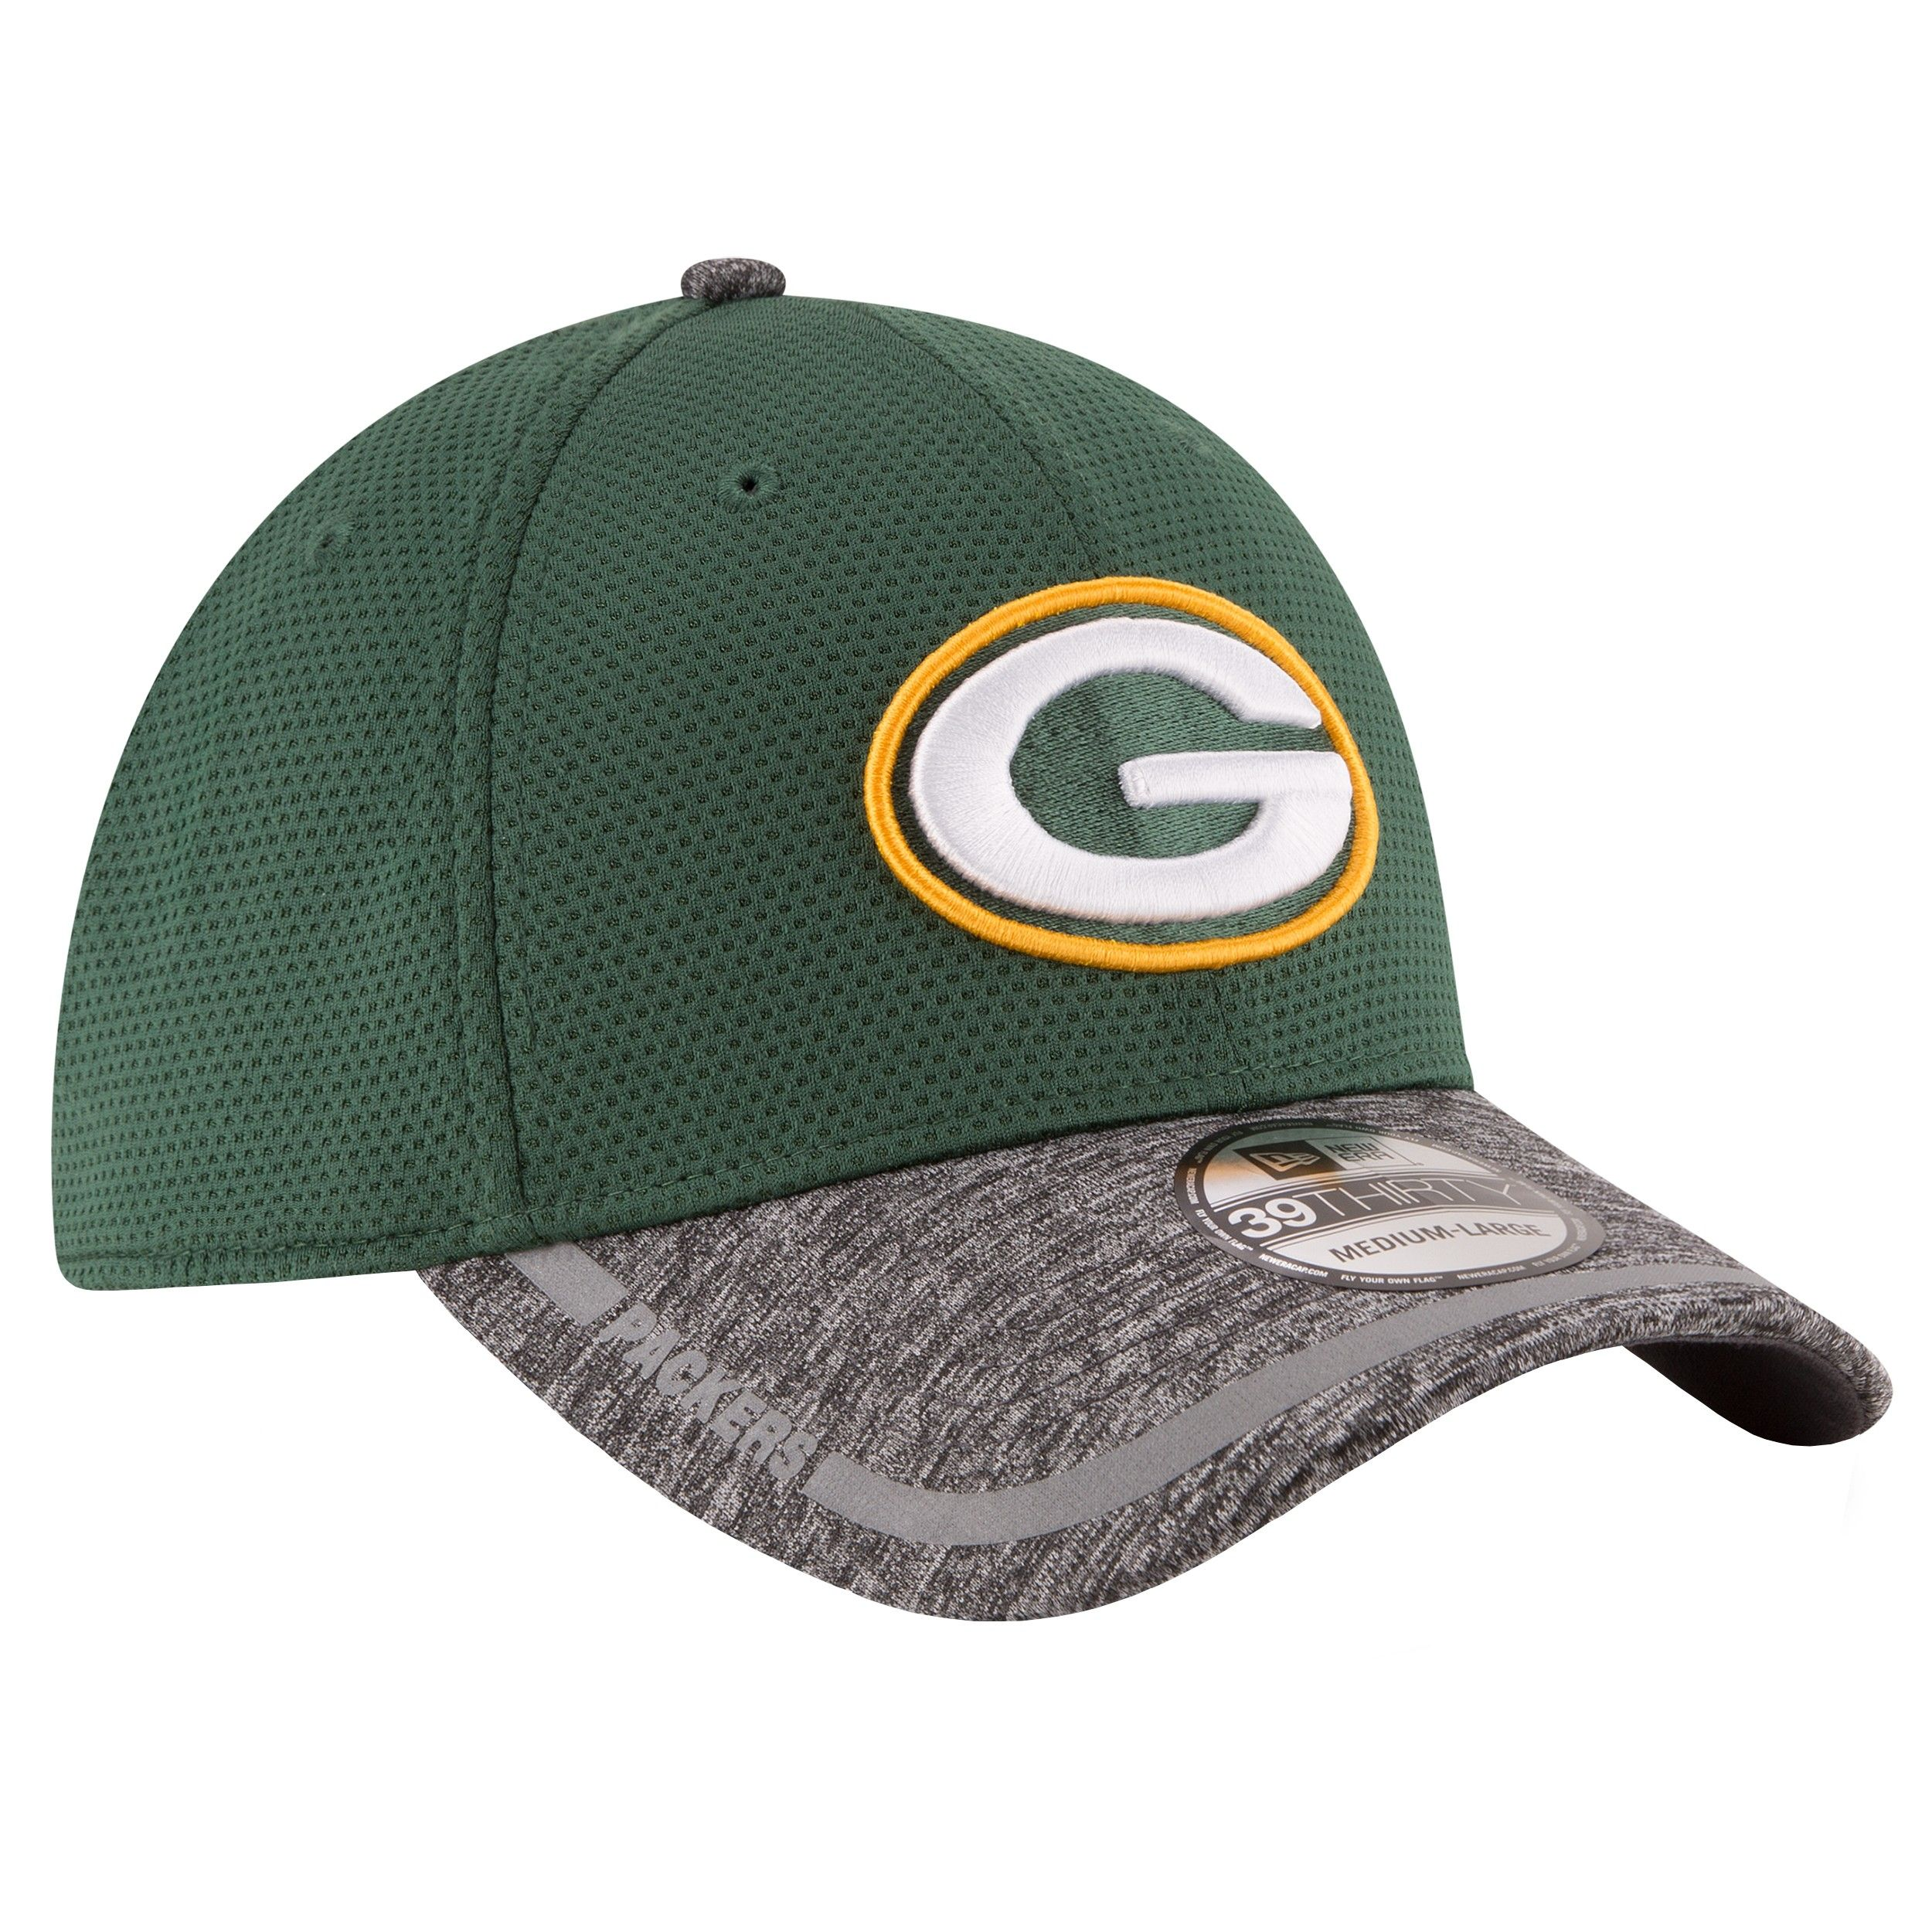 8f5cb57279b7ff 2016 Training Camp Official 39Thirty Stretch Cap. 2016 Training Camp  Official 39Thirty Stretch Cap Fitted Caps, Green Bay Packers ...